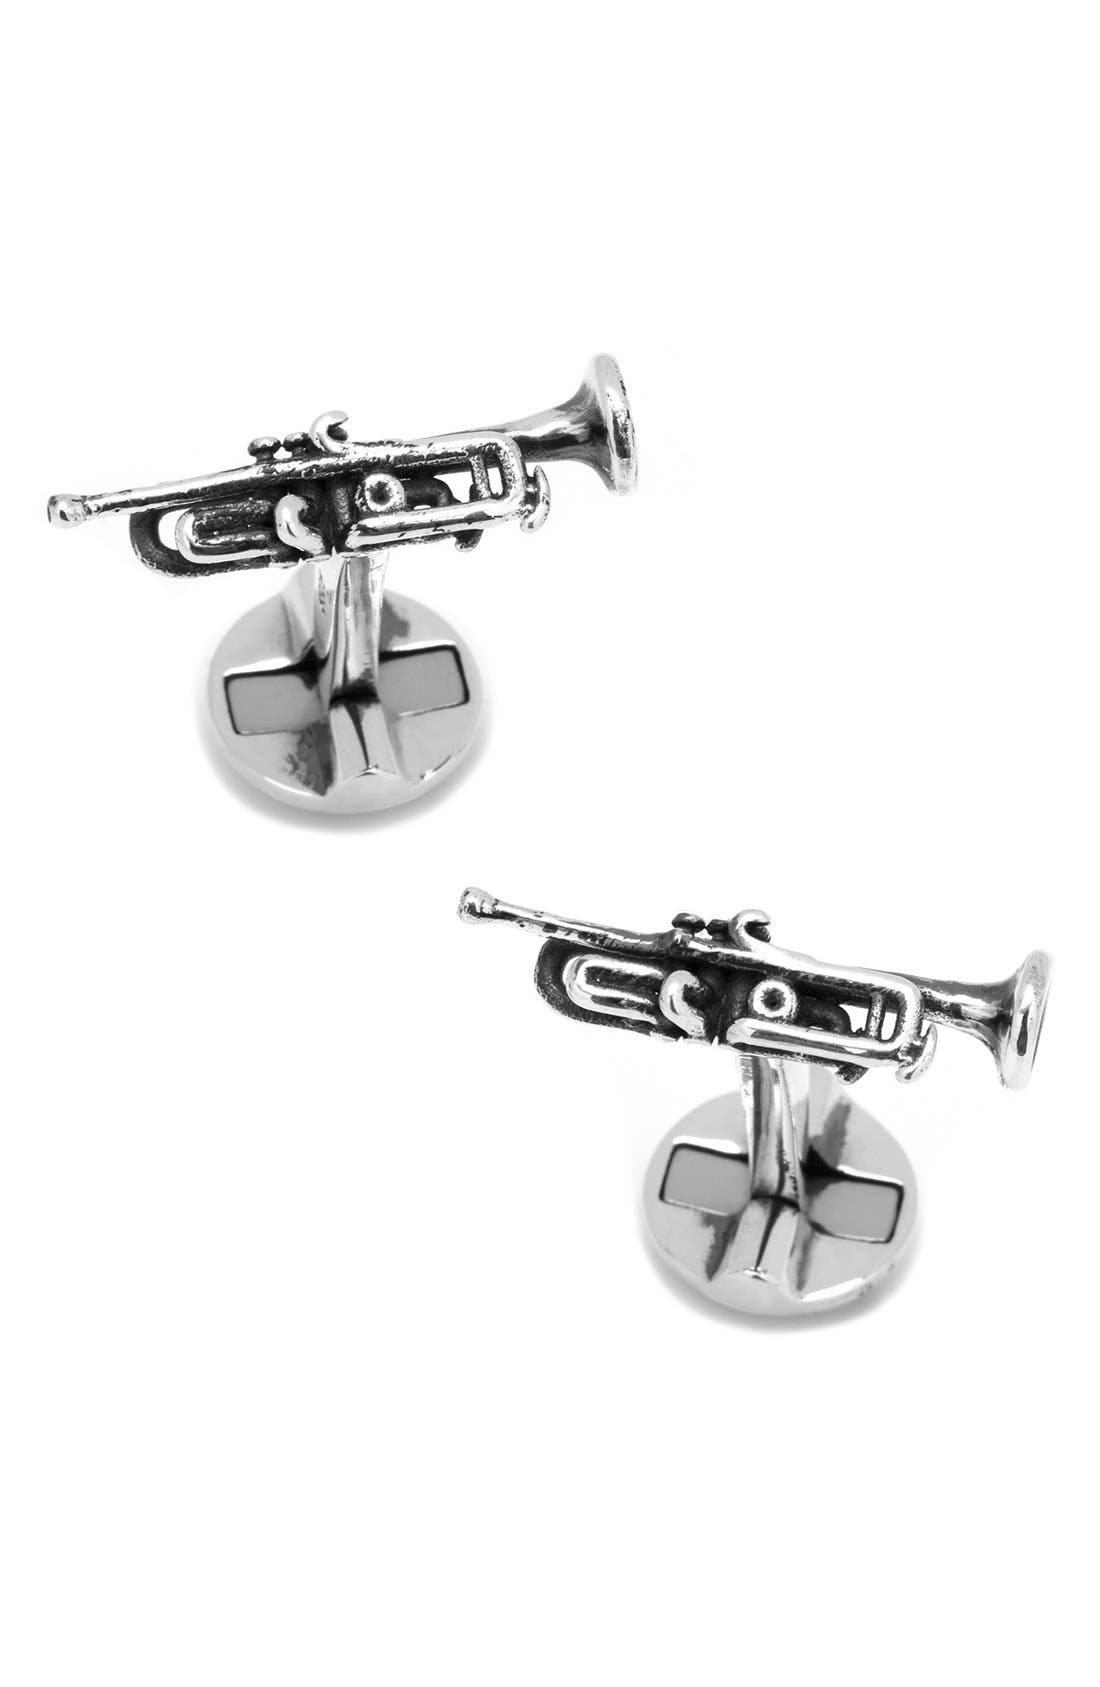 Alternate Image 1 Selected - Ox and Bull Trading Co. Trumpet Cuff Links